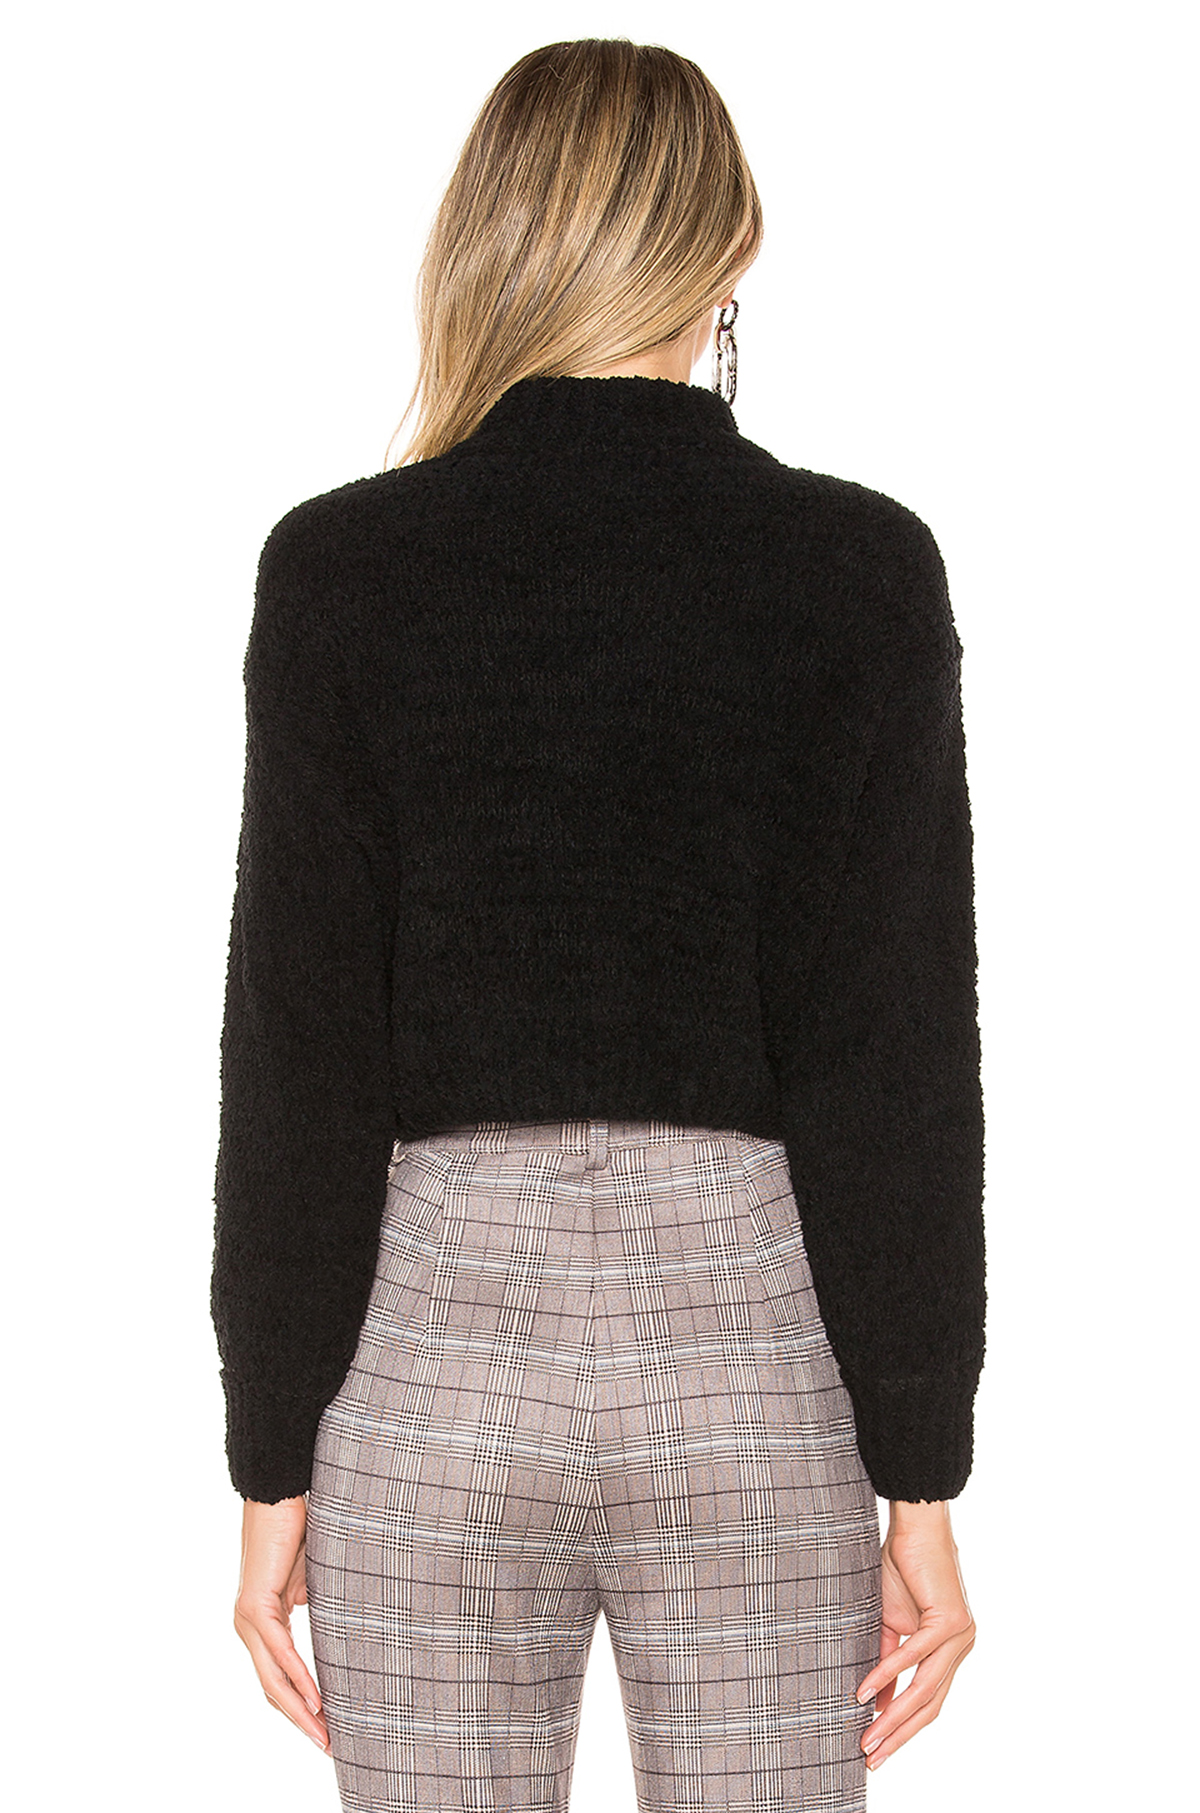 Revolve Chenille Sweater Back